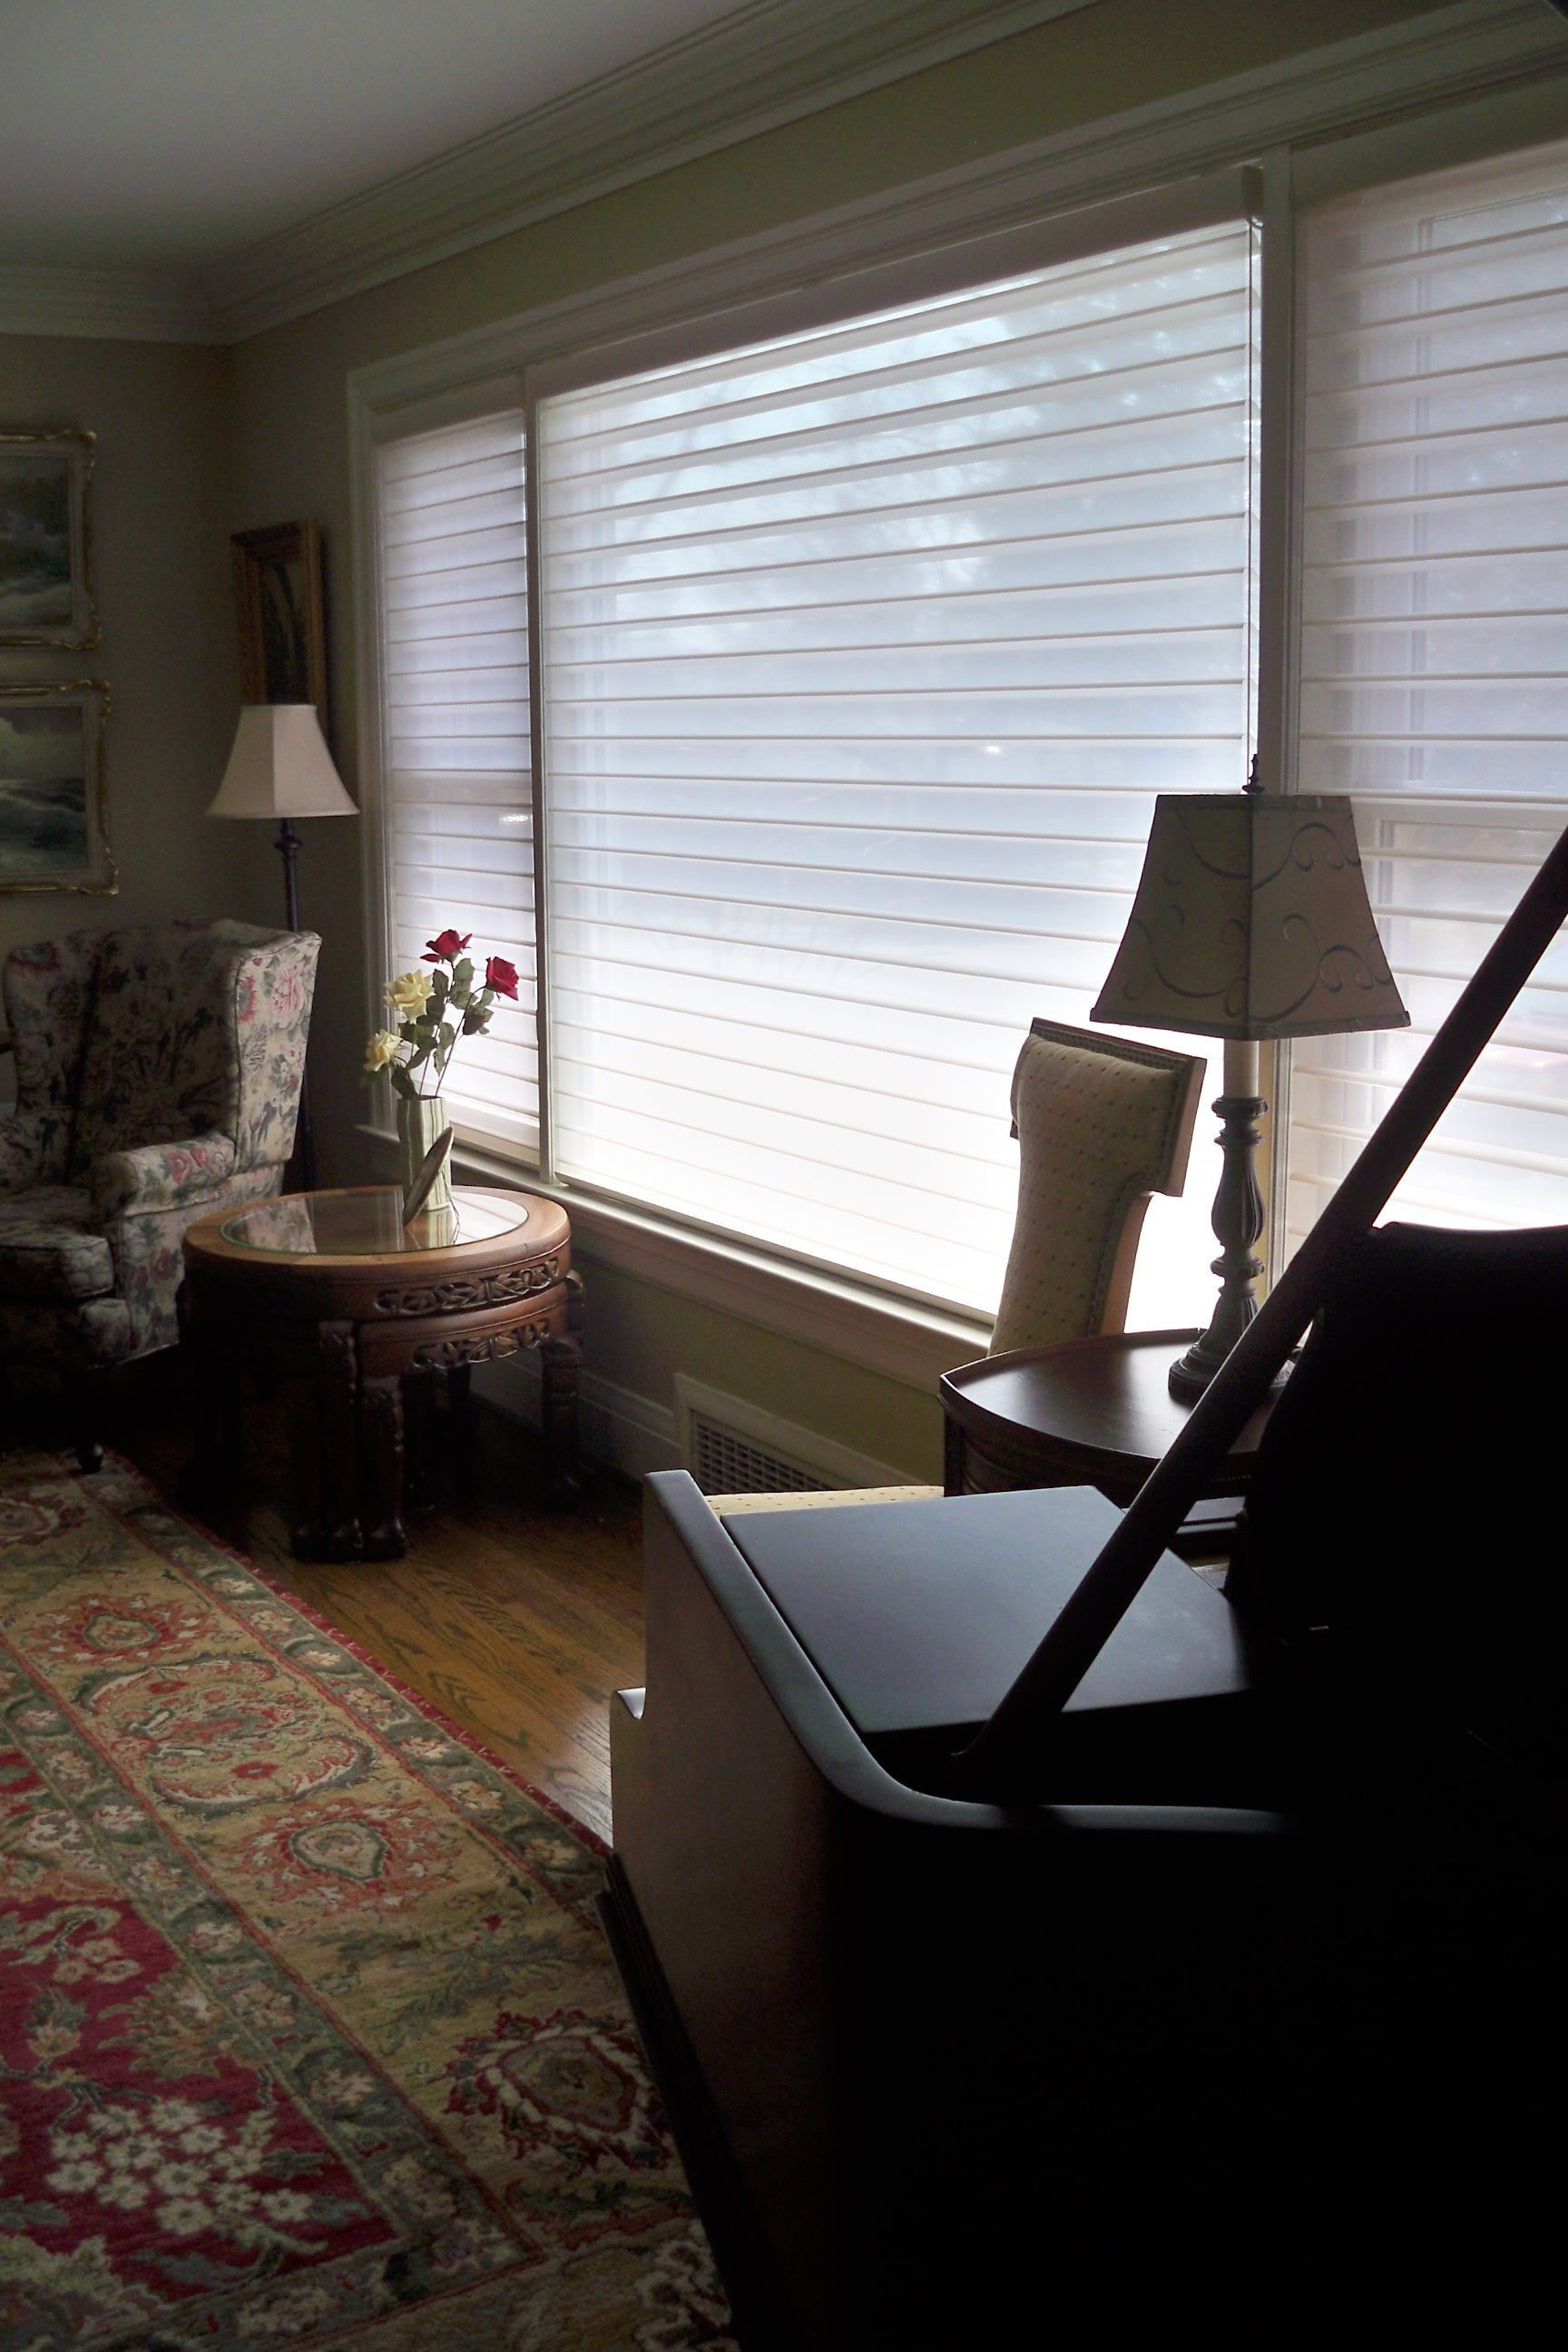 Window Treatment Ideas For Large Windows Windowtreatmentideasfortwostoryrooms Dreamhomepop Com Furniture